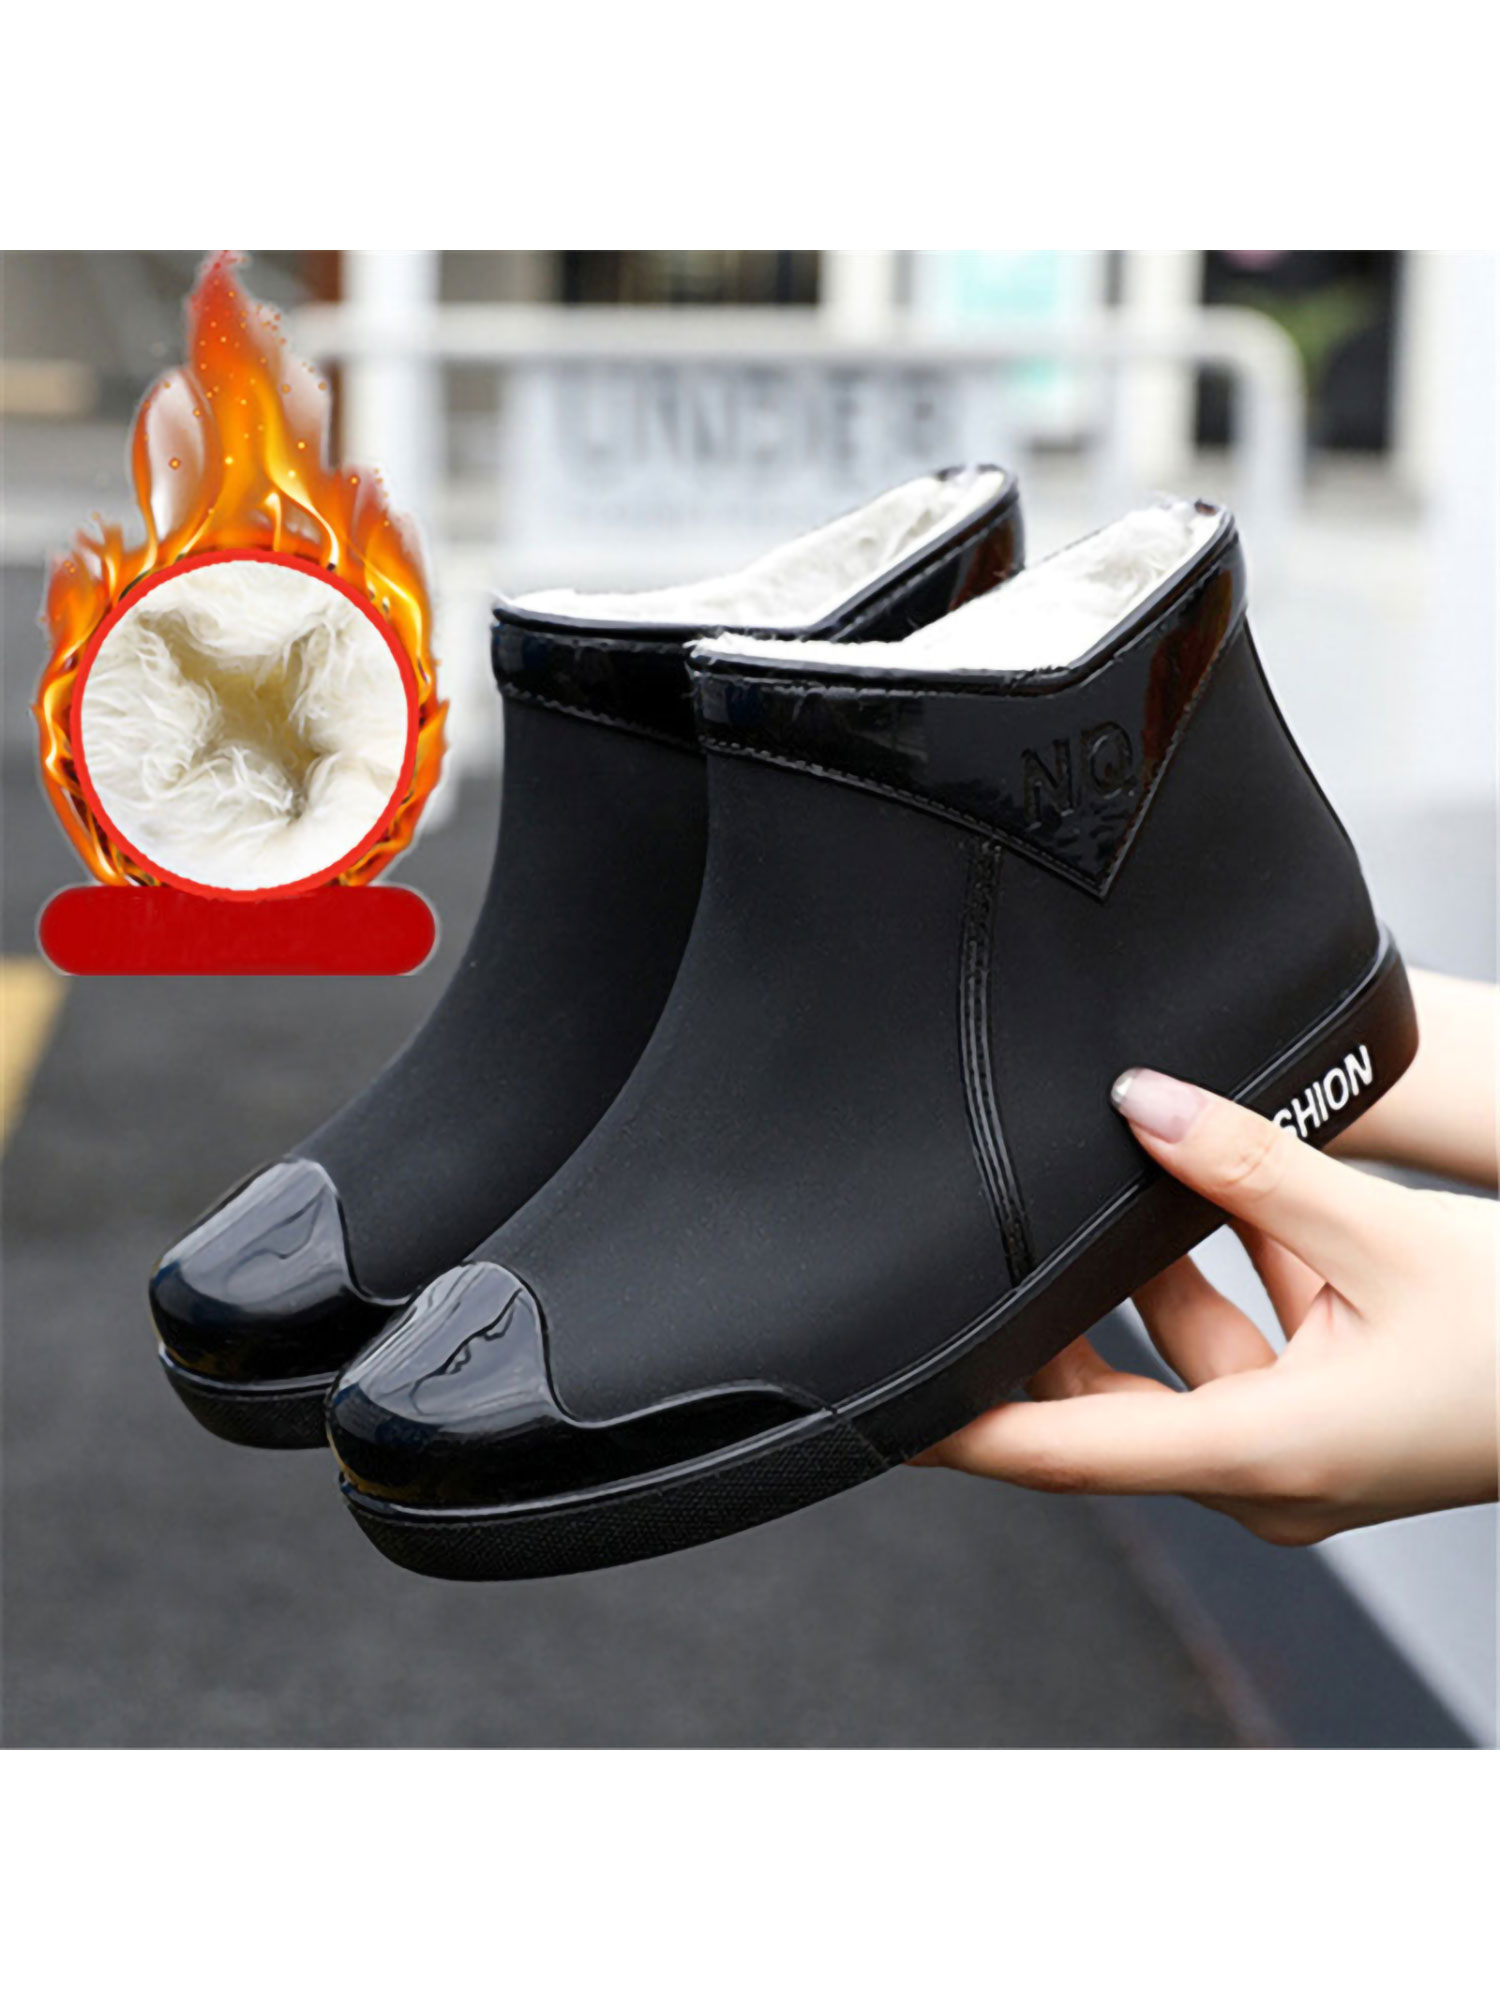 Details about  /Women Wedges Rainboots Waterproof Shoes Rubber Slip On Short Boot Casual Fashion